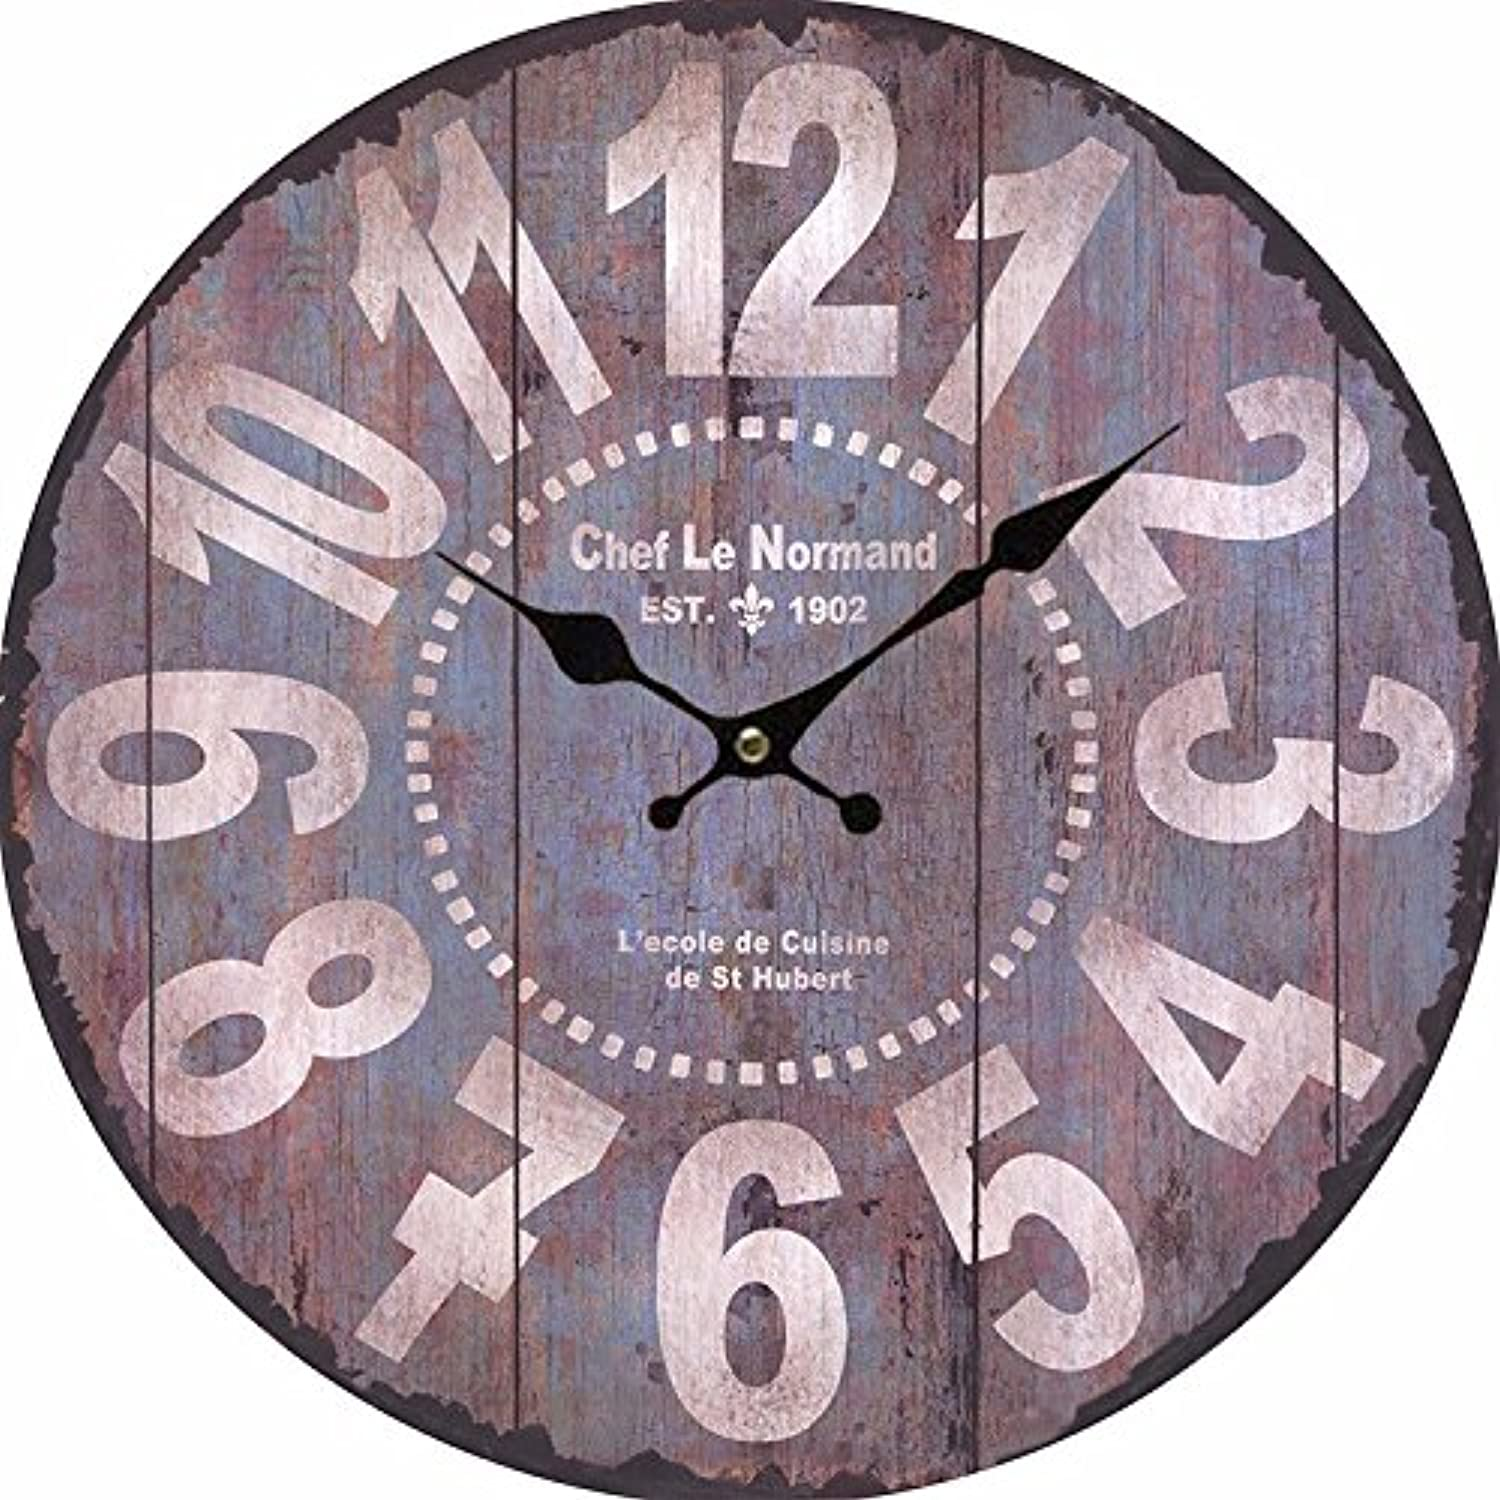 Stylish Modern MultiColoured Cute Retro Style Wall Clock Ideal for Any Room in Home 12 inch Wooden Round D